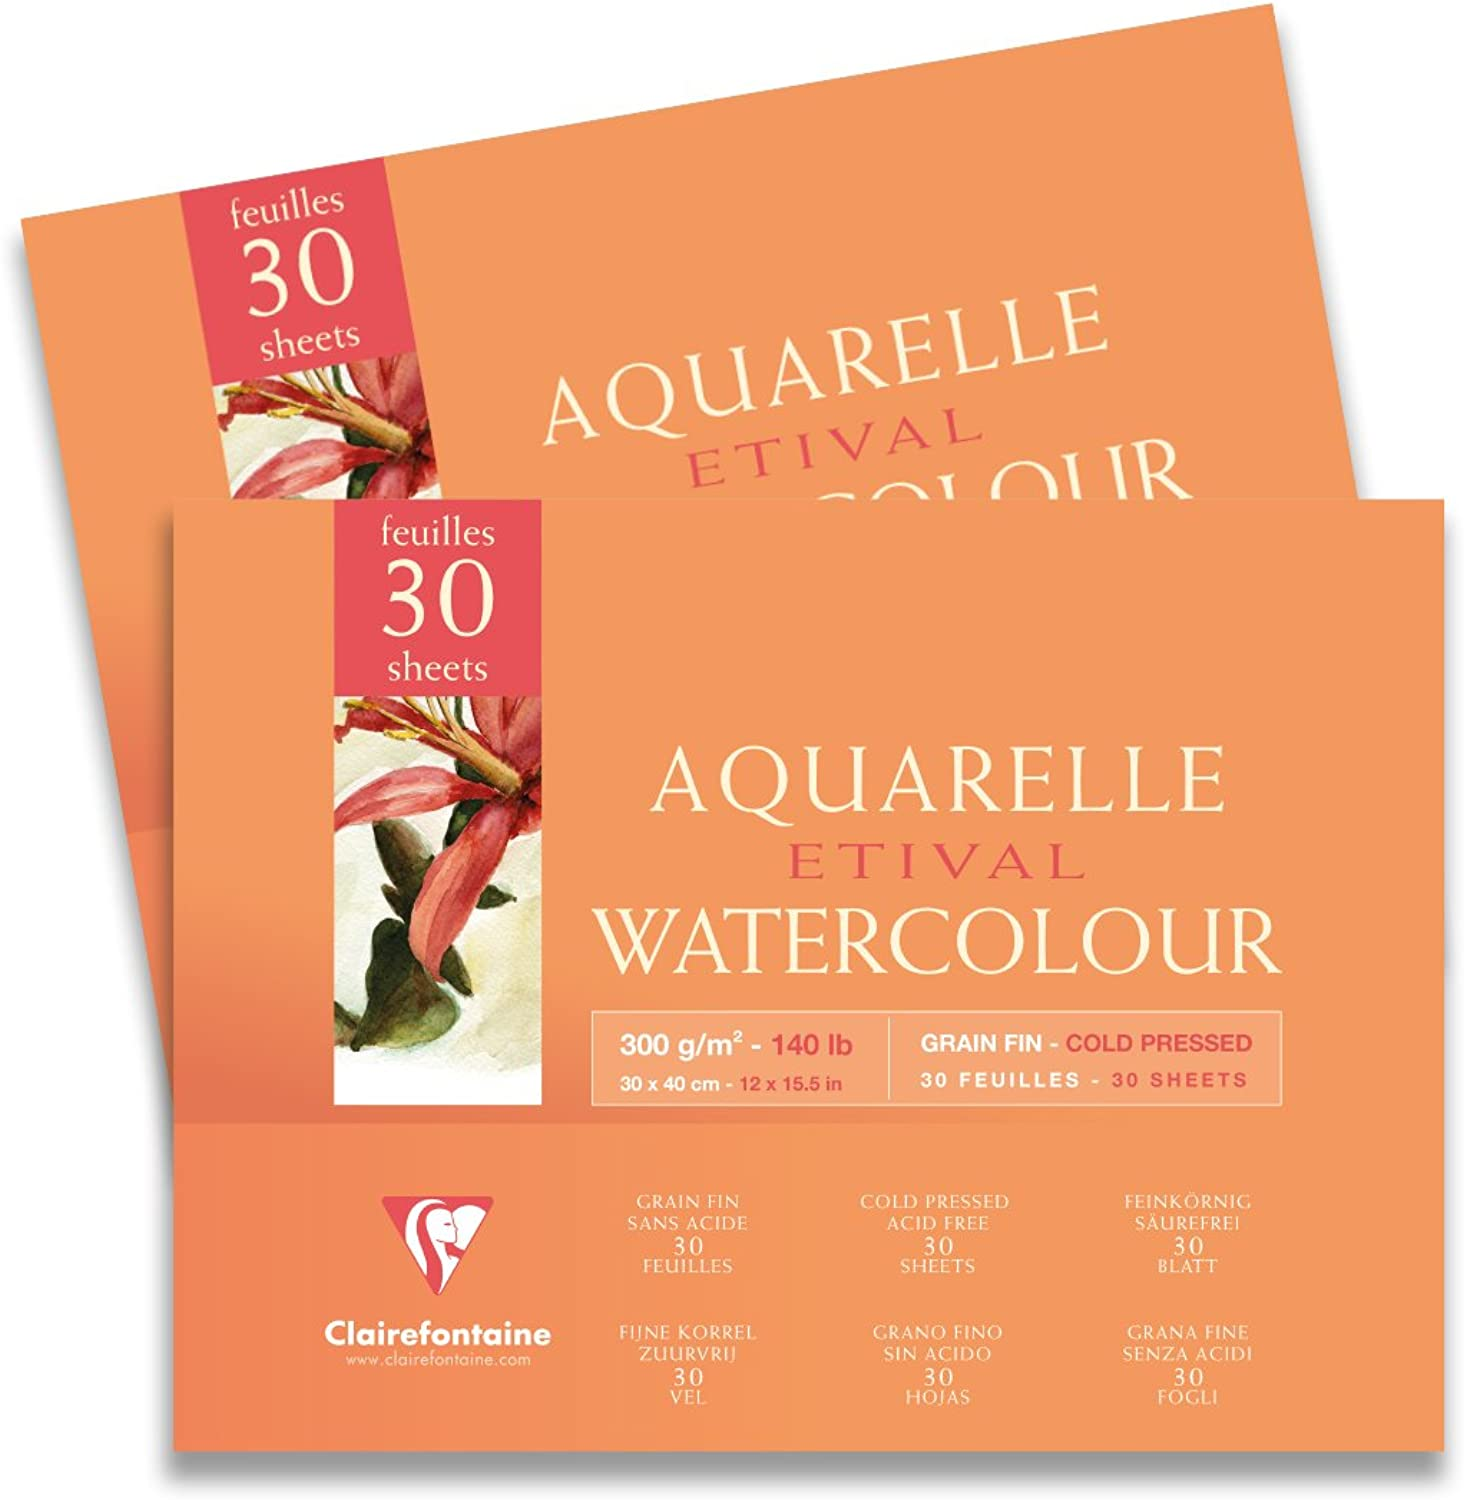 Clairefontaine 18 x x x 24 cm 140 lb Cold Pressed Etival Pad in